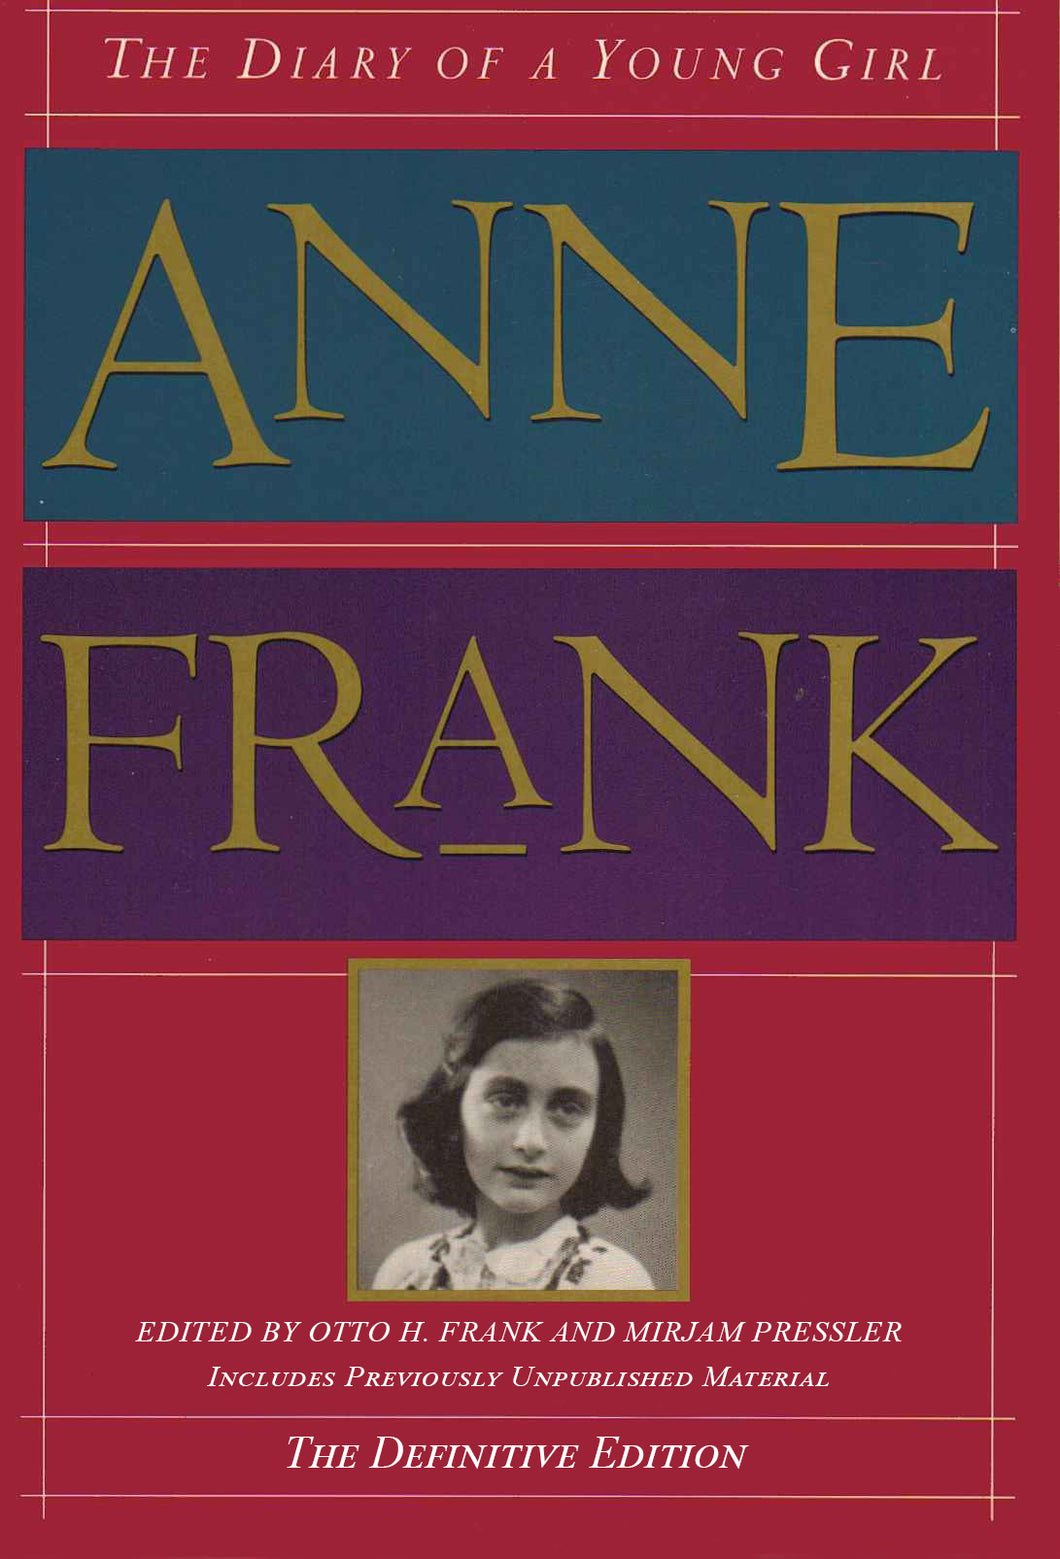 The Diary of a Young Girl: Definitive Edition: by Anne Frank - eBook, ePUB, Mobi, PDF (Fast instant delivery)